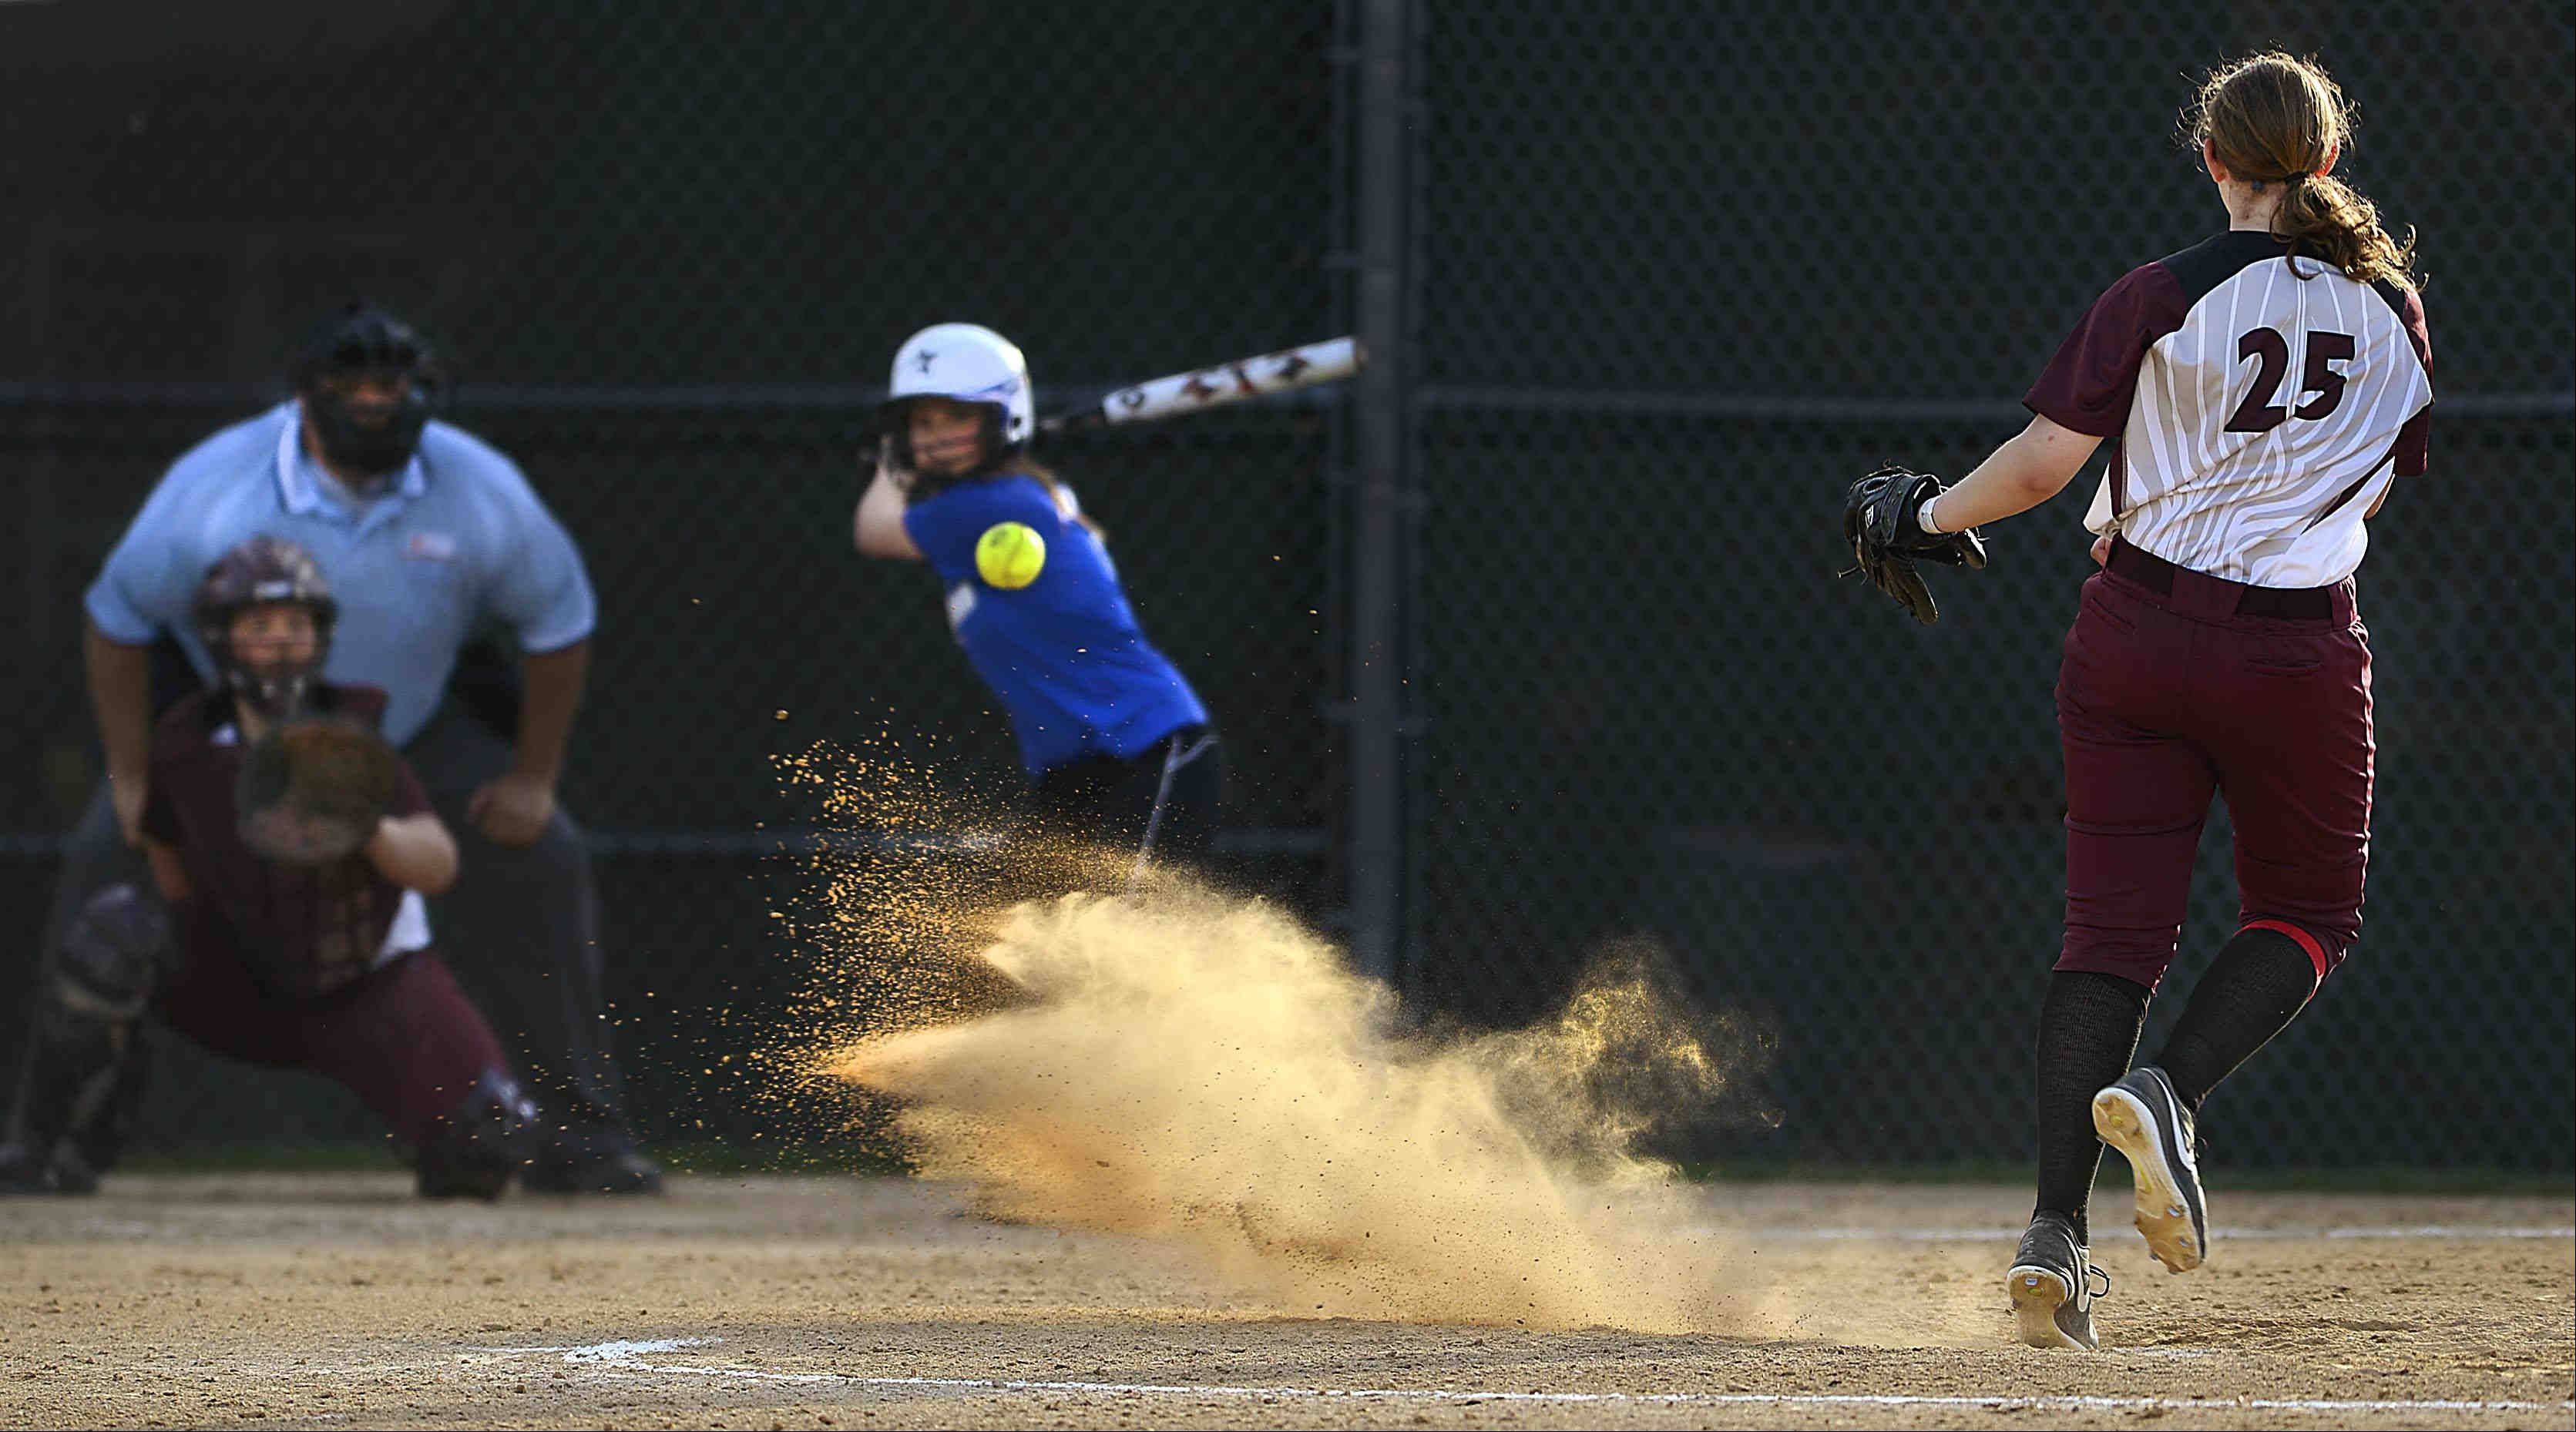 Elgin�s Jessica Rago kicks up a cloud of dust as she delivers to St. Charles North�s Allison Hausl Tuesday in Elgin. Hausl grounded out to end the seventh.